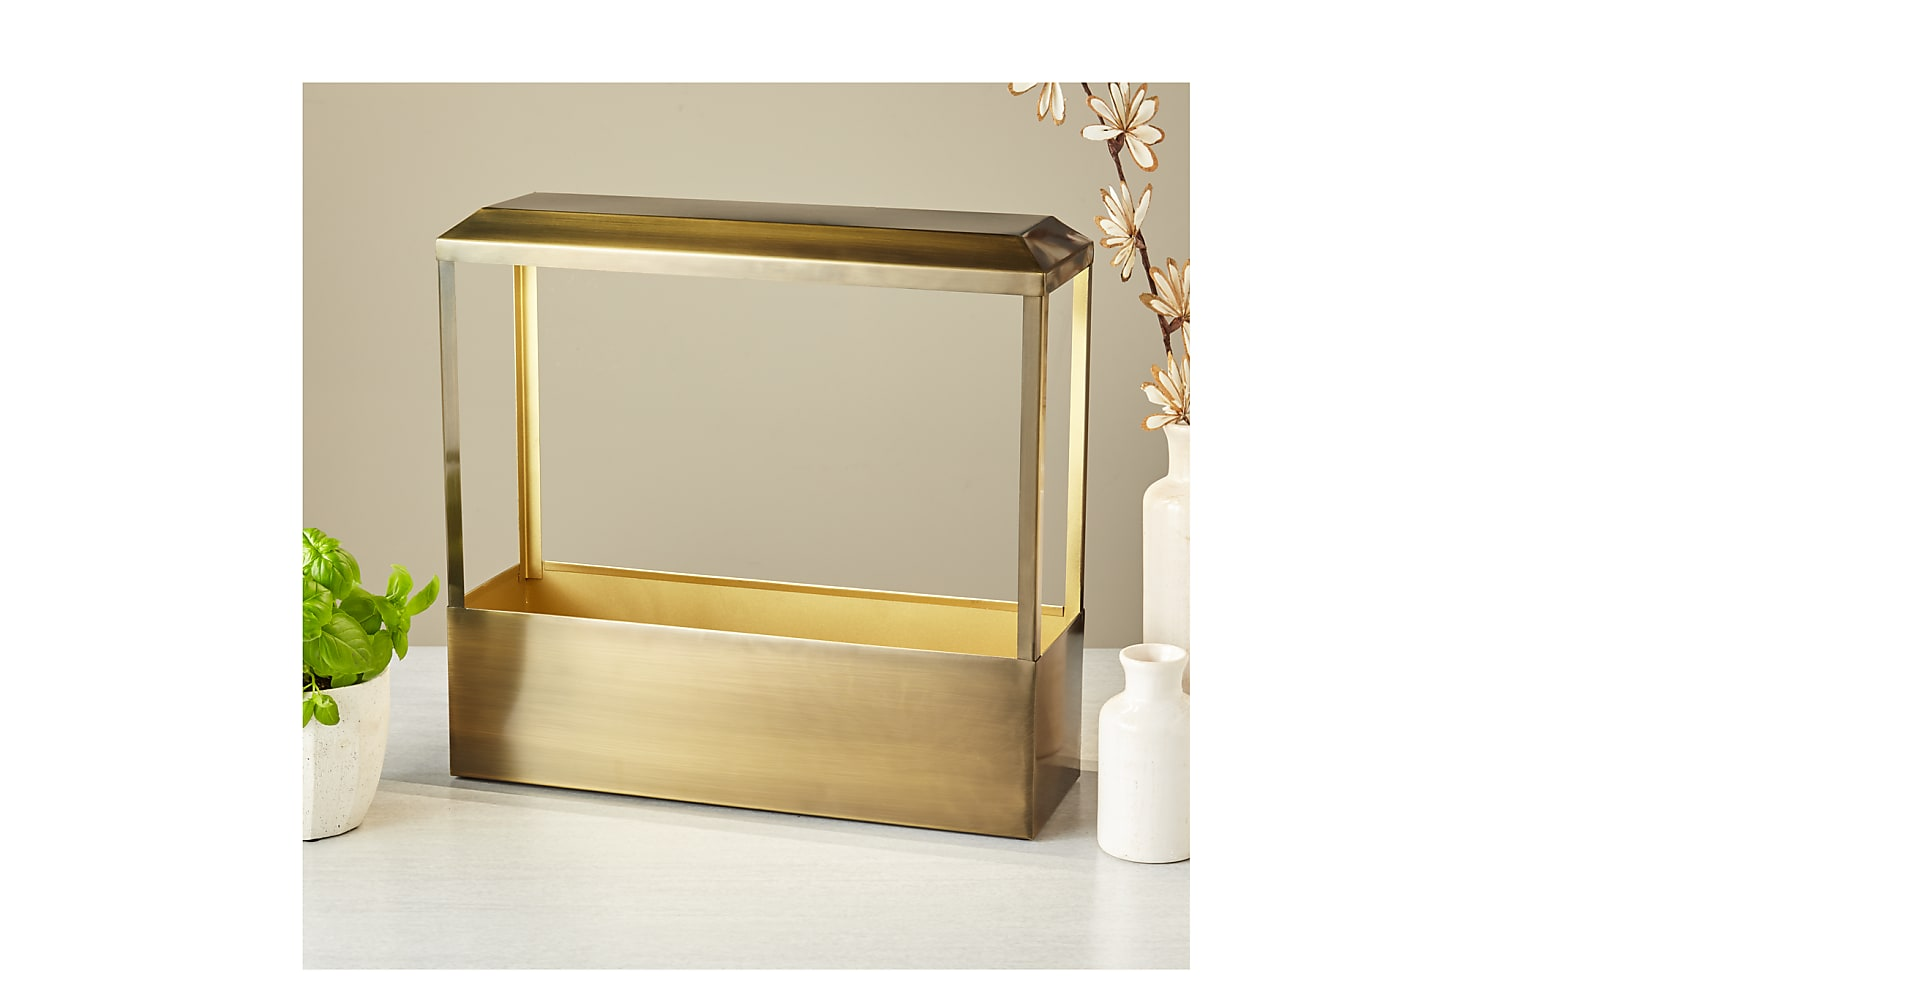 Brass Smart Growhouse - Image 2 Of 2